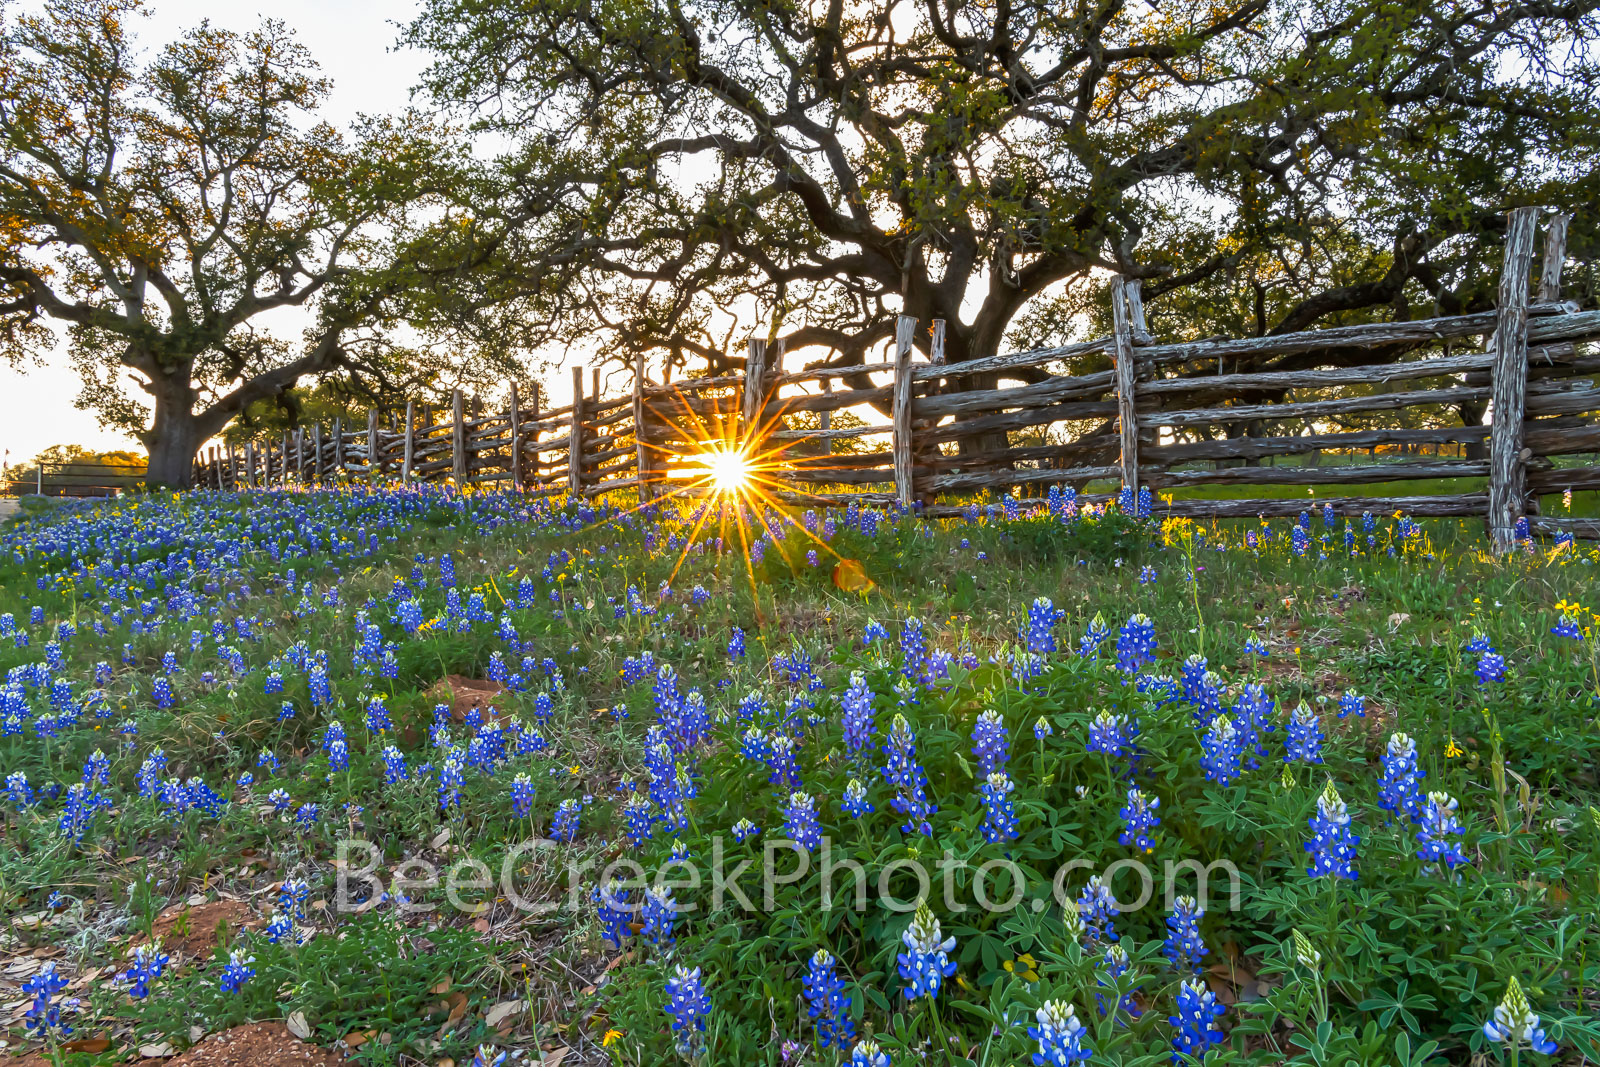 texas bluebonnets, texas wildflowers, sunset, sun rays, fench, cedar fence, bluebonnents in the hill country,  wildflowers in the texas hill country, oak tree, willow city loop, country, bluebonnets, , photo